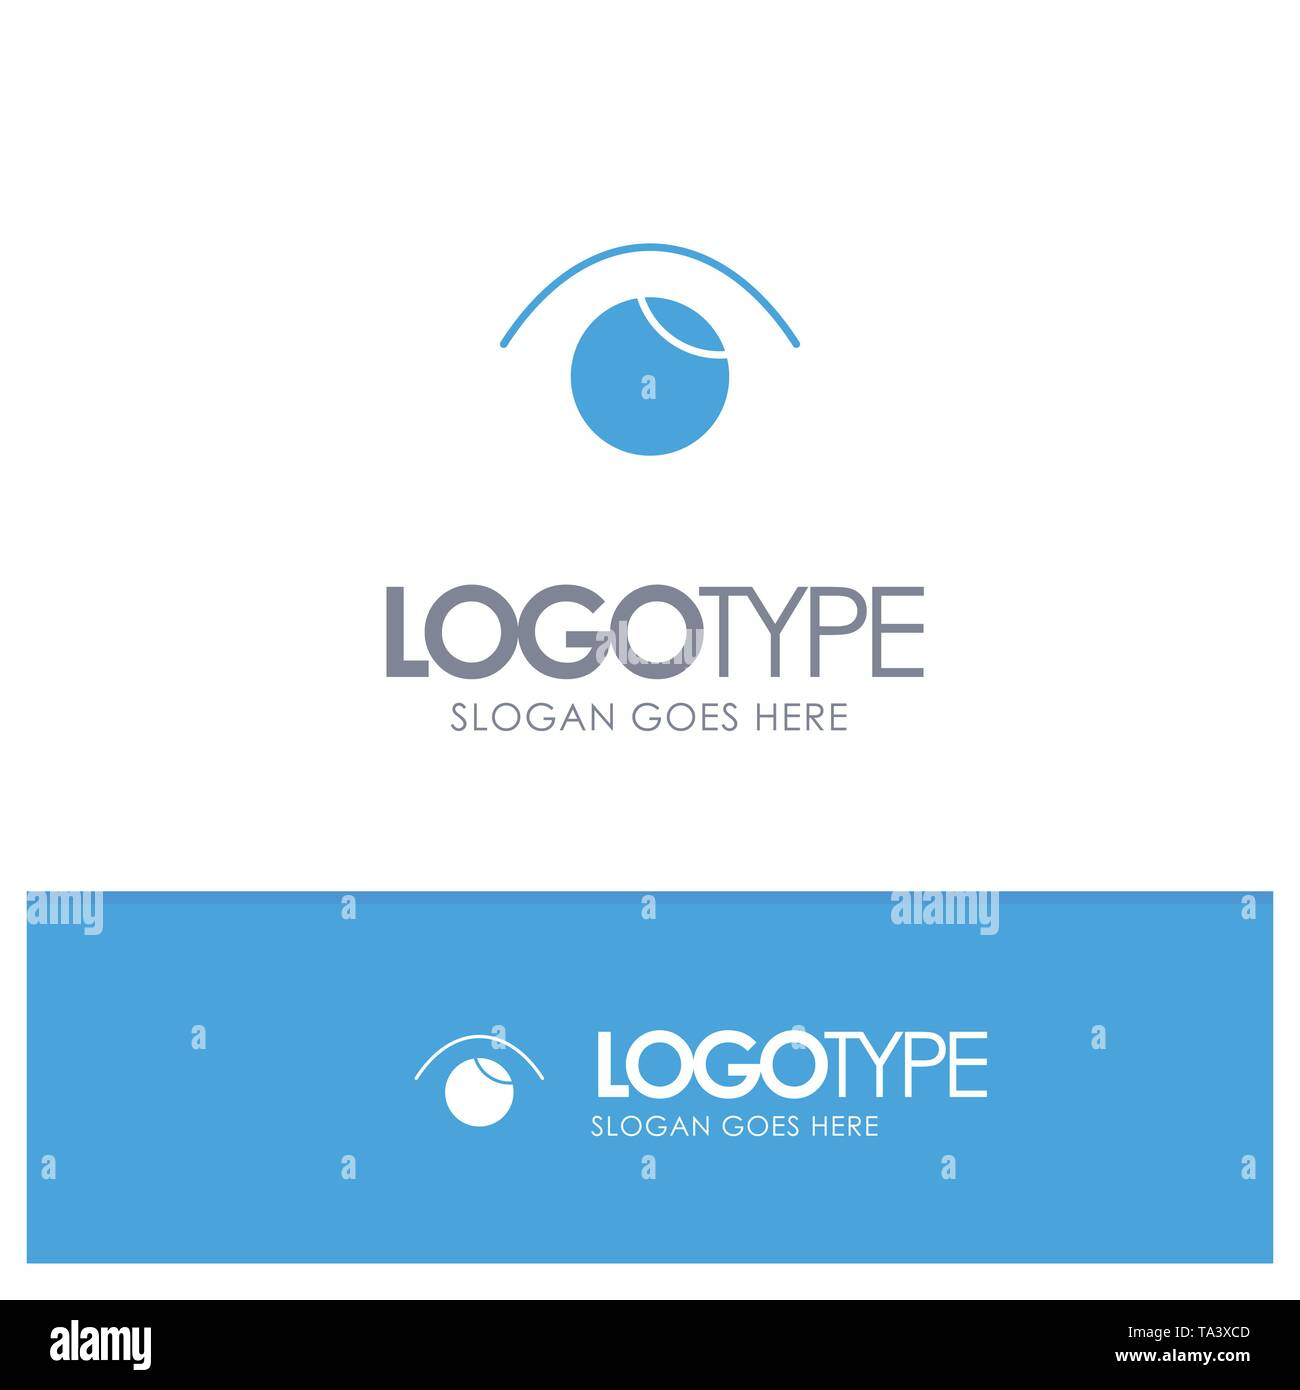 Eye, View, Watch, Twitter Blue Solid Logo with place for tagline - Stock Image